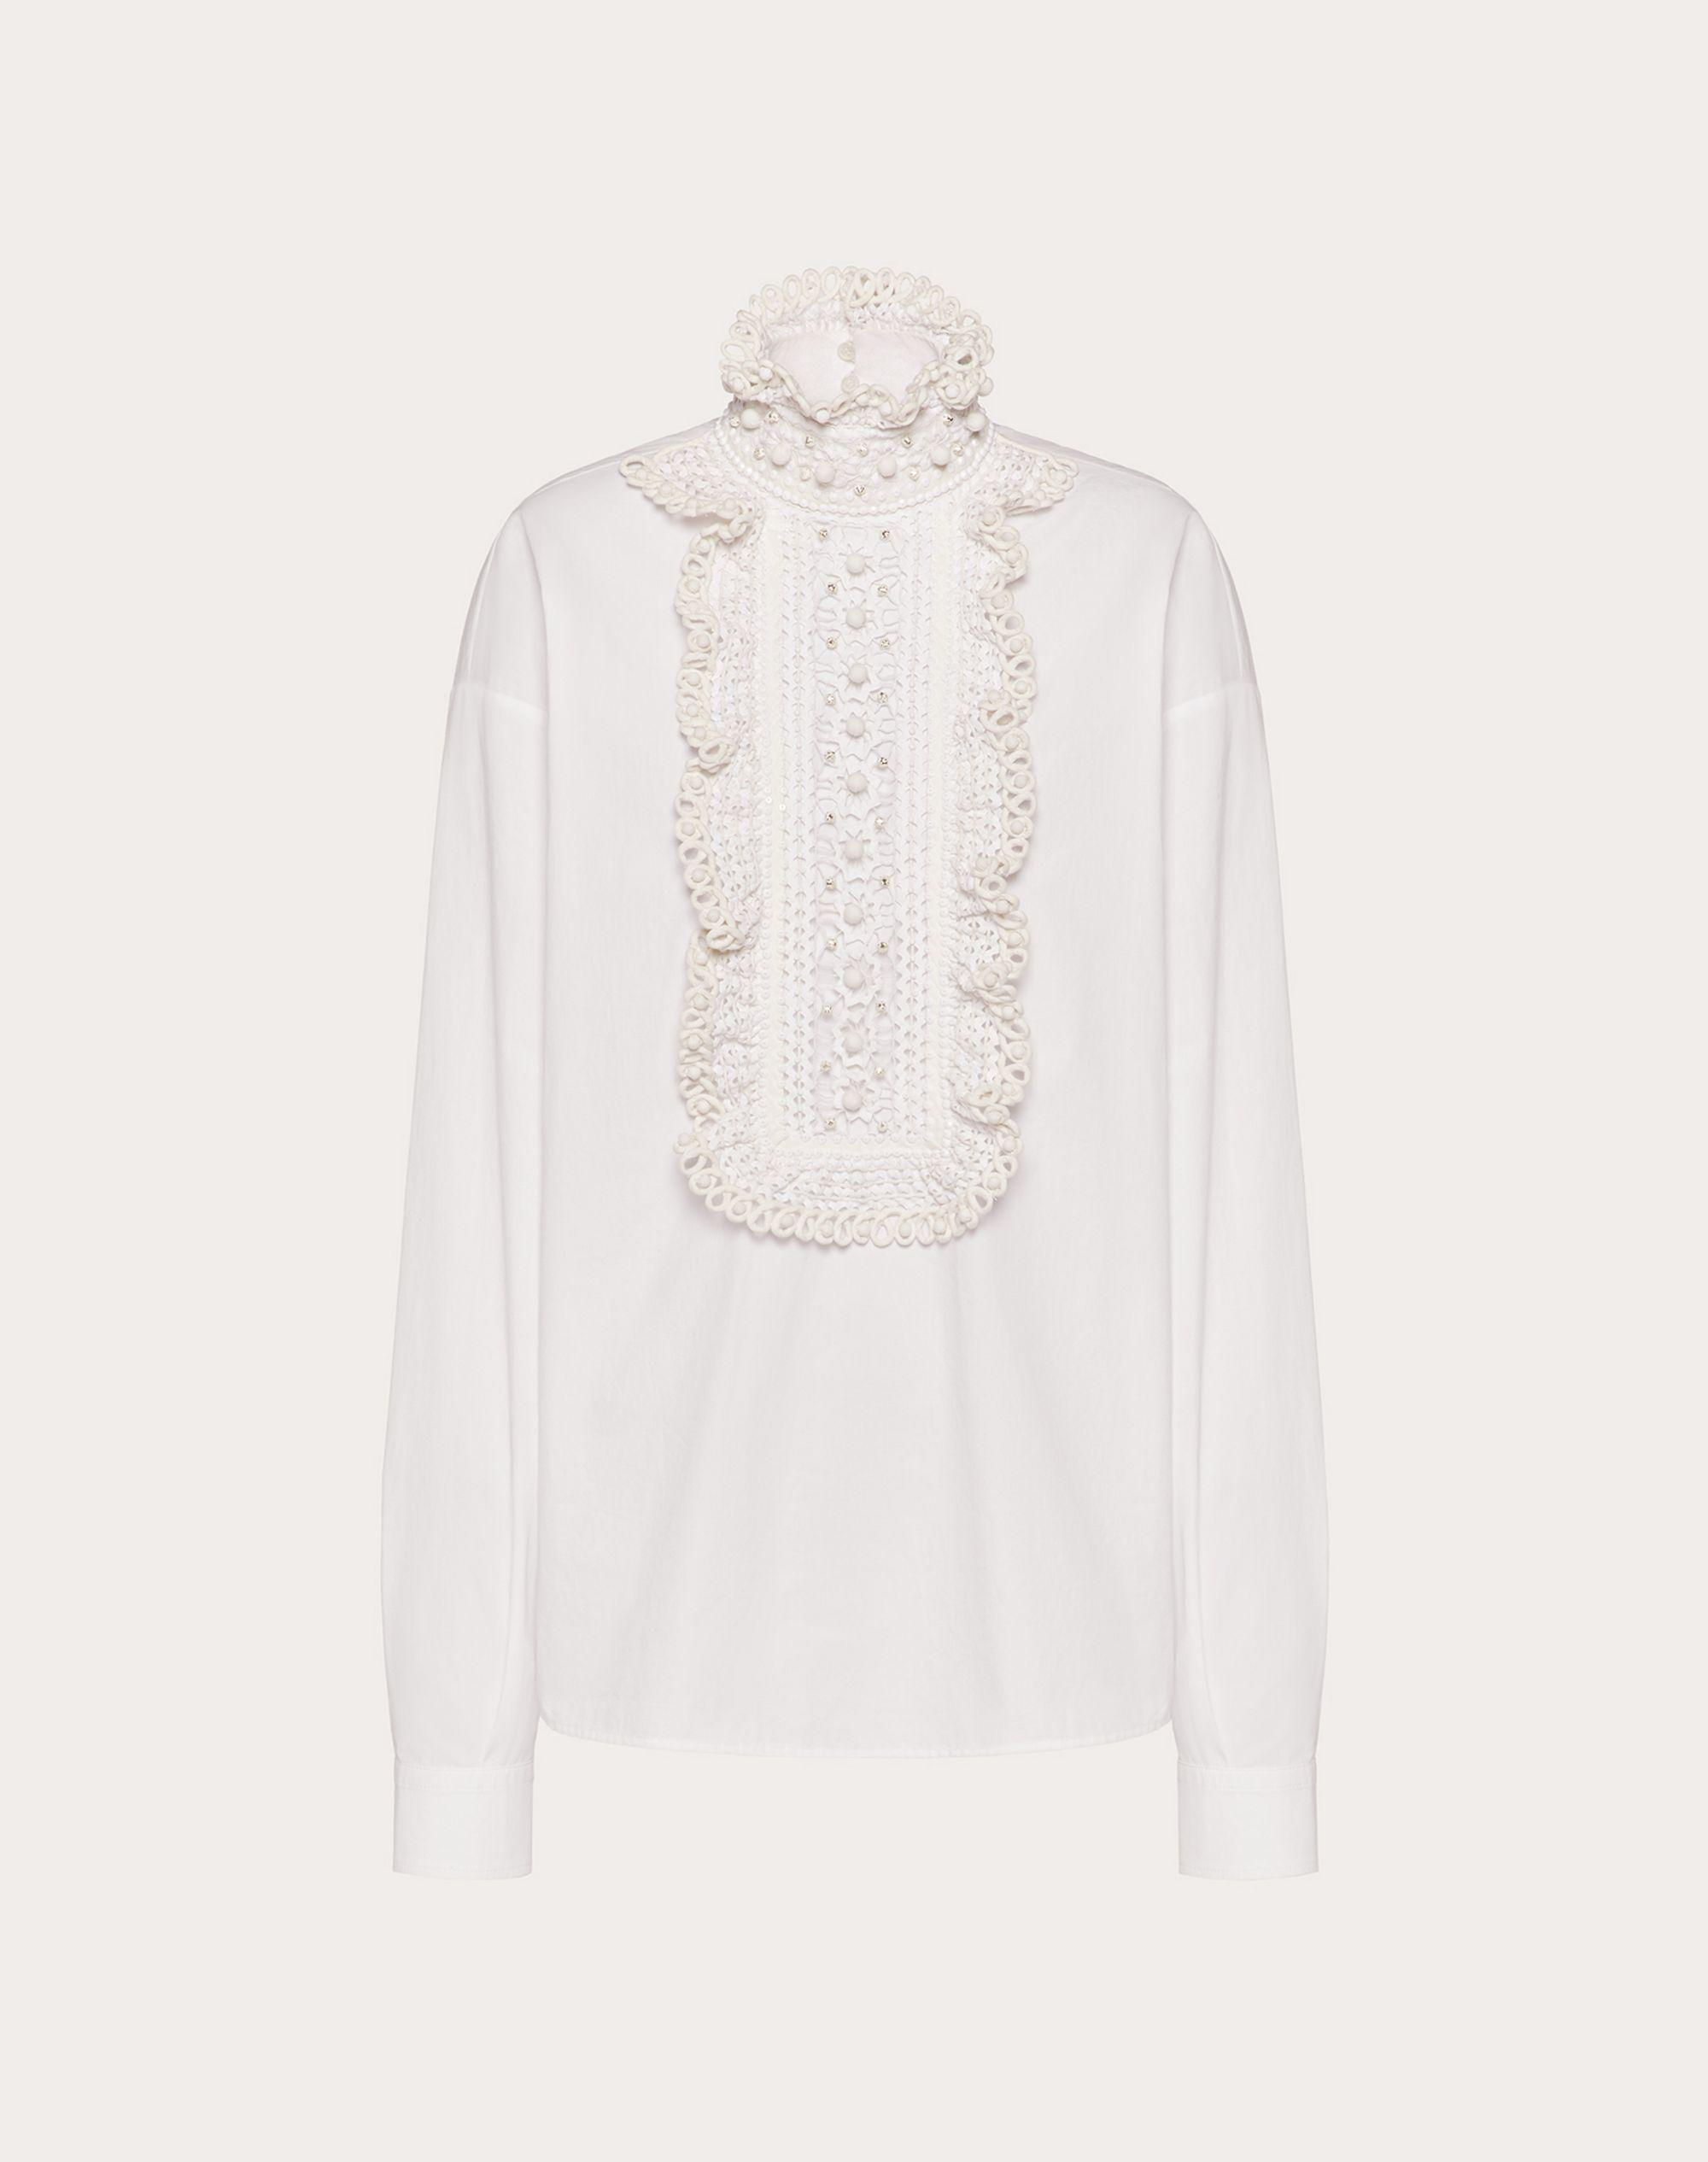 EMBROIDERED COTTON POPLIN TOP 4